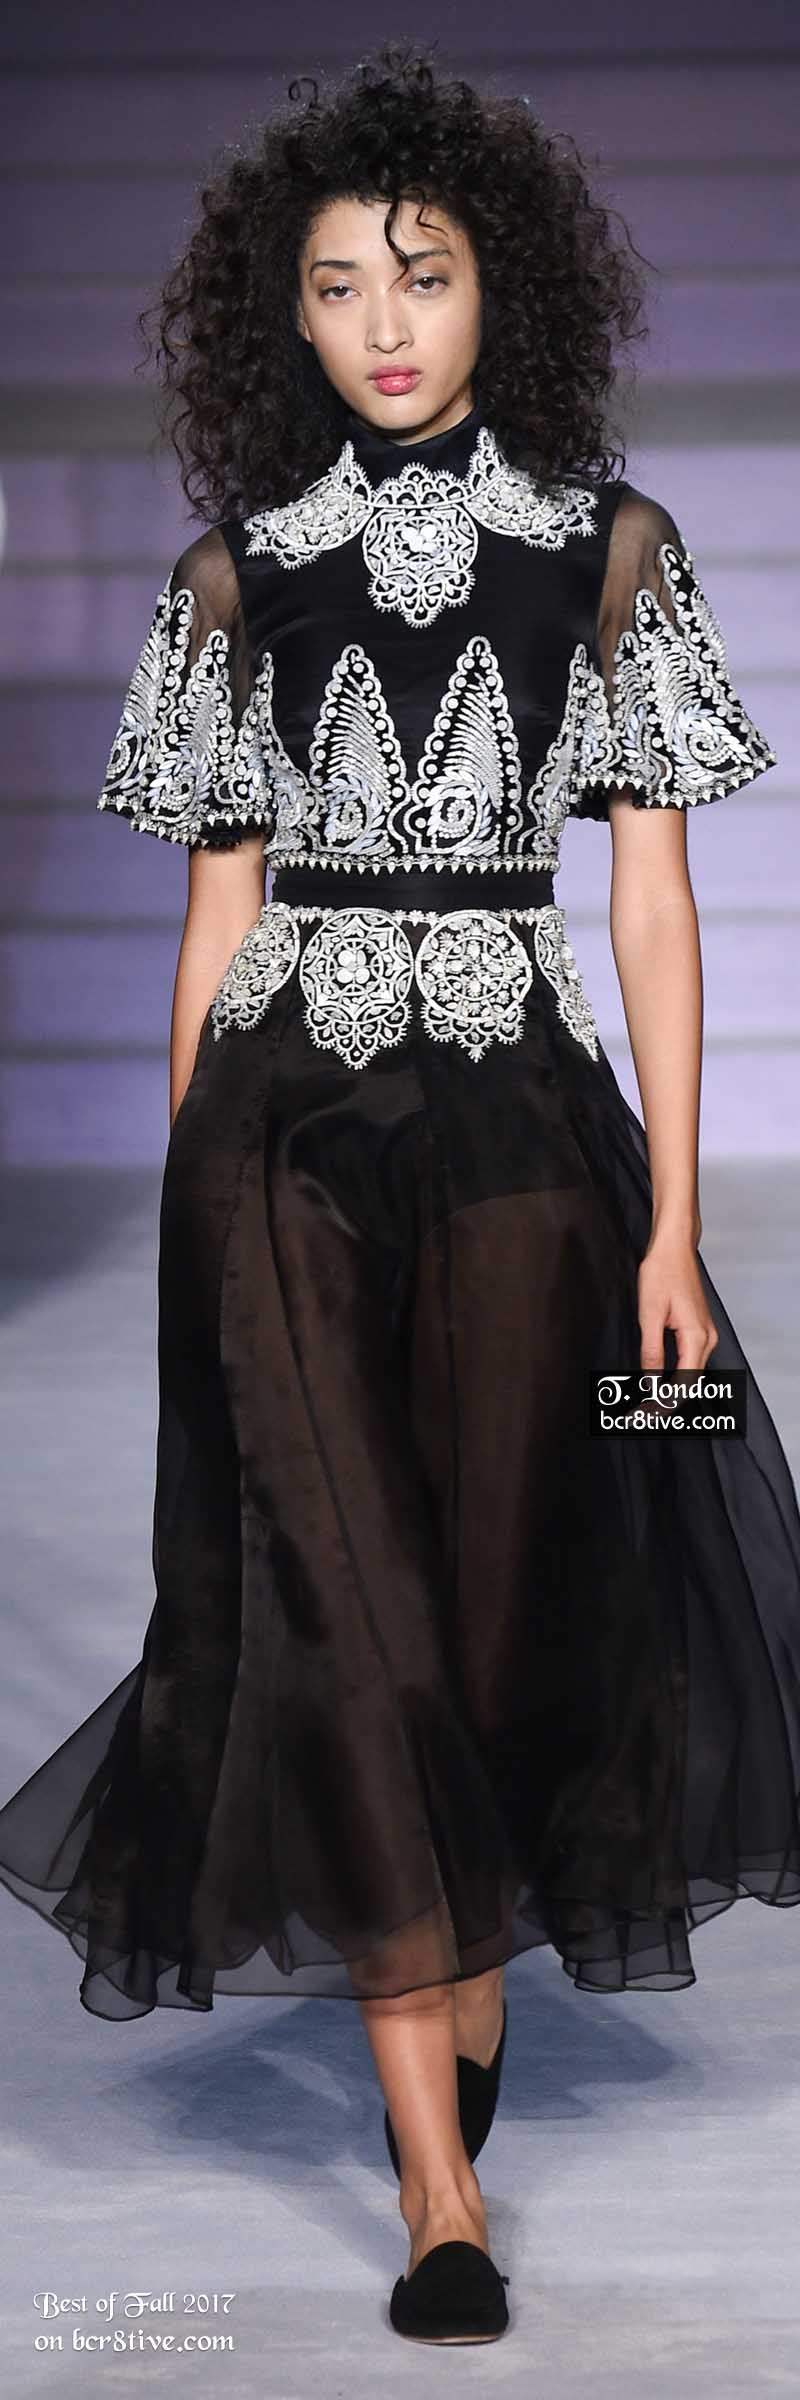 Temperley London Fall 2017